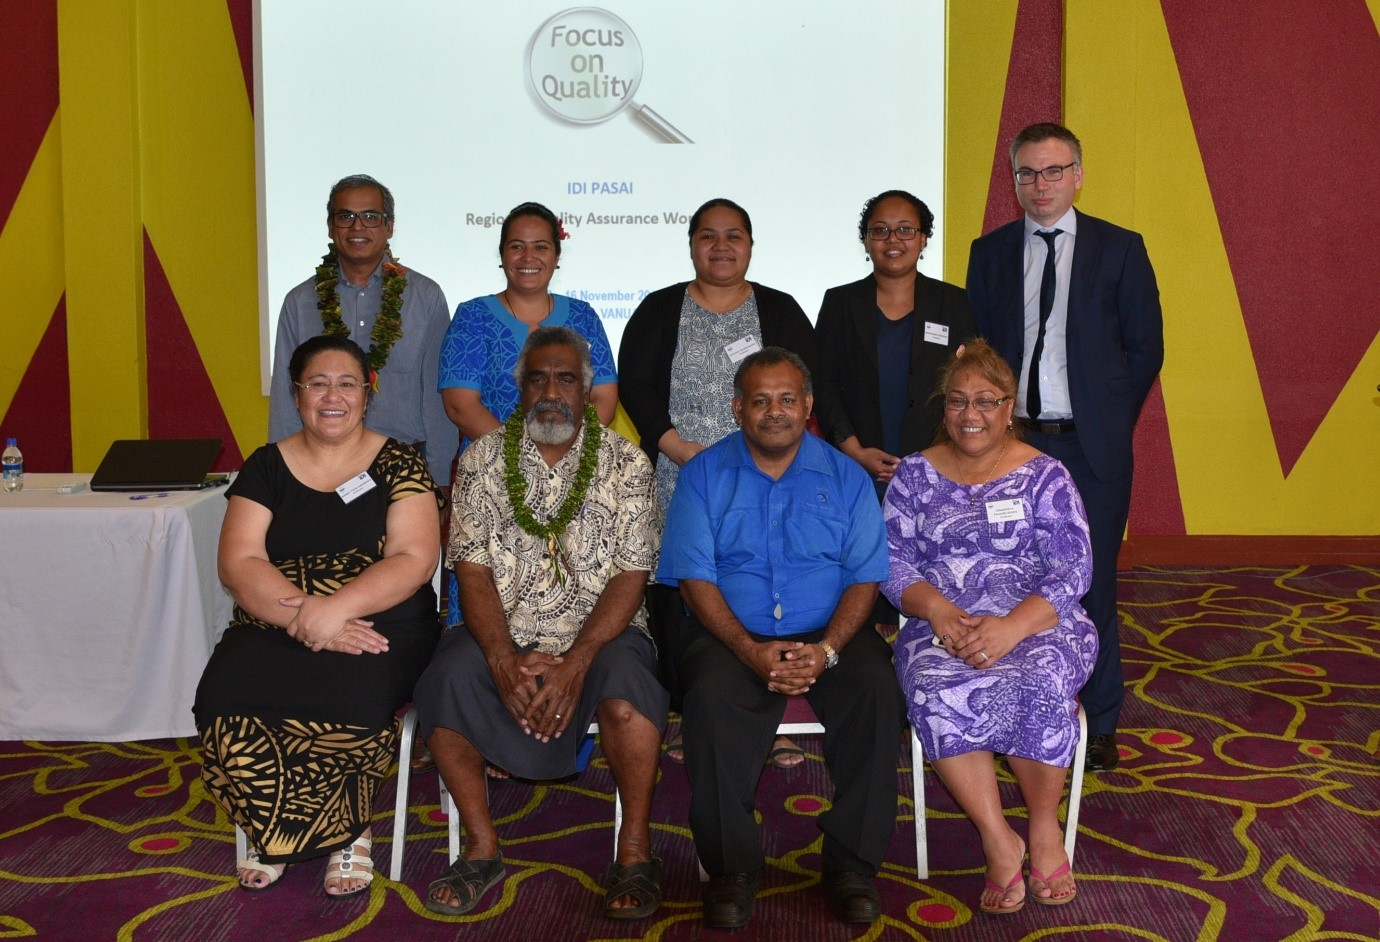 Back Row L-R : IDI Capacity Manager MD Shofiqul Islam, Morina Faasisila SAI Samoa, Fatafehi Taumohoha'apai SAI Tonga, Meresimani Vosawale SAI Fiji, Nick Johnston NZ OAG   Front Row L-R:  A'eau Agnes Aruwafu, PASAI Director Technical Support; Chairman of PAC Vanuatu, Hon Ephraim Kalsakau; Vanuatu Auditor-General, Mr Caleb Sandy and Mrs Sina Palamo-Iosefo, PASAI Director Practice Development